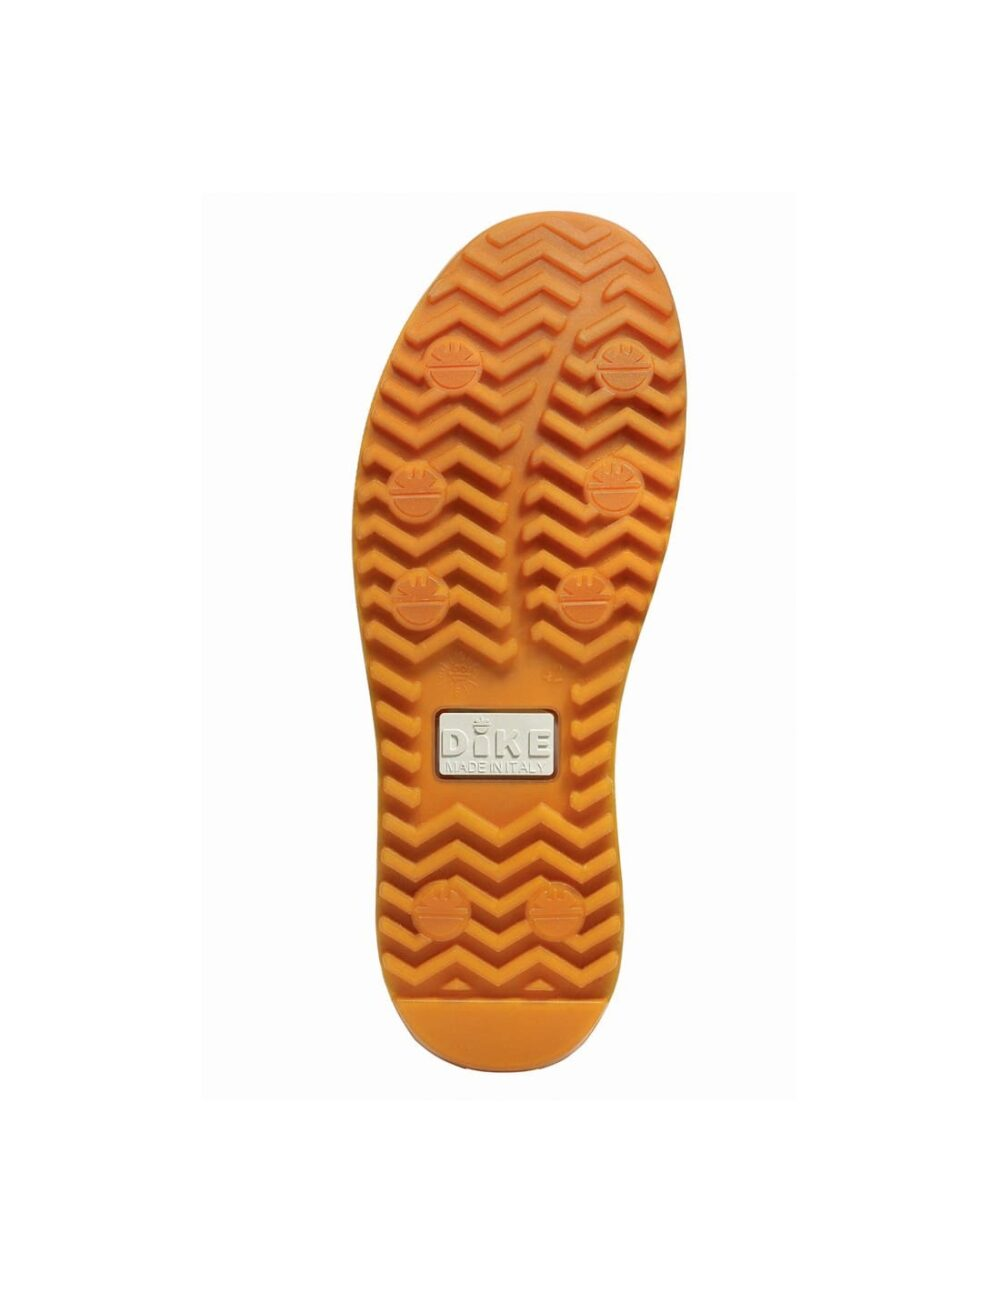 Dikes safety shoe range with non-slip sole.